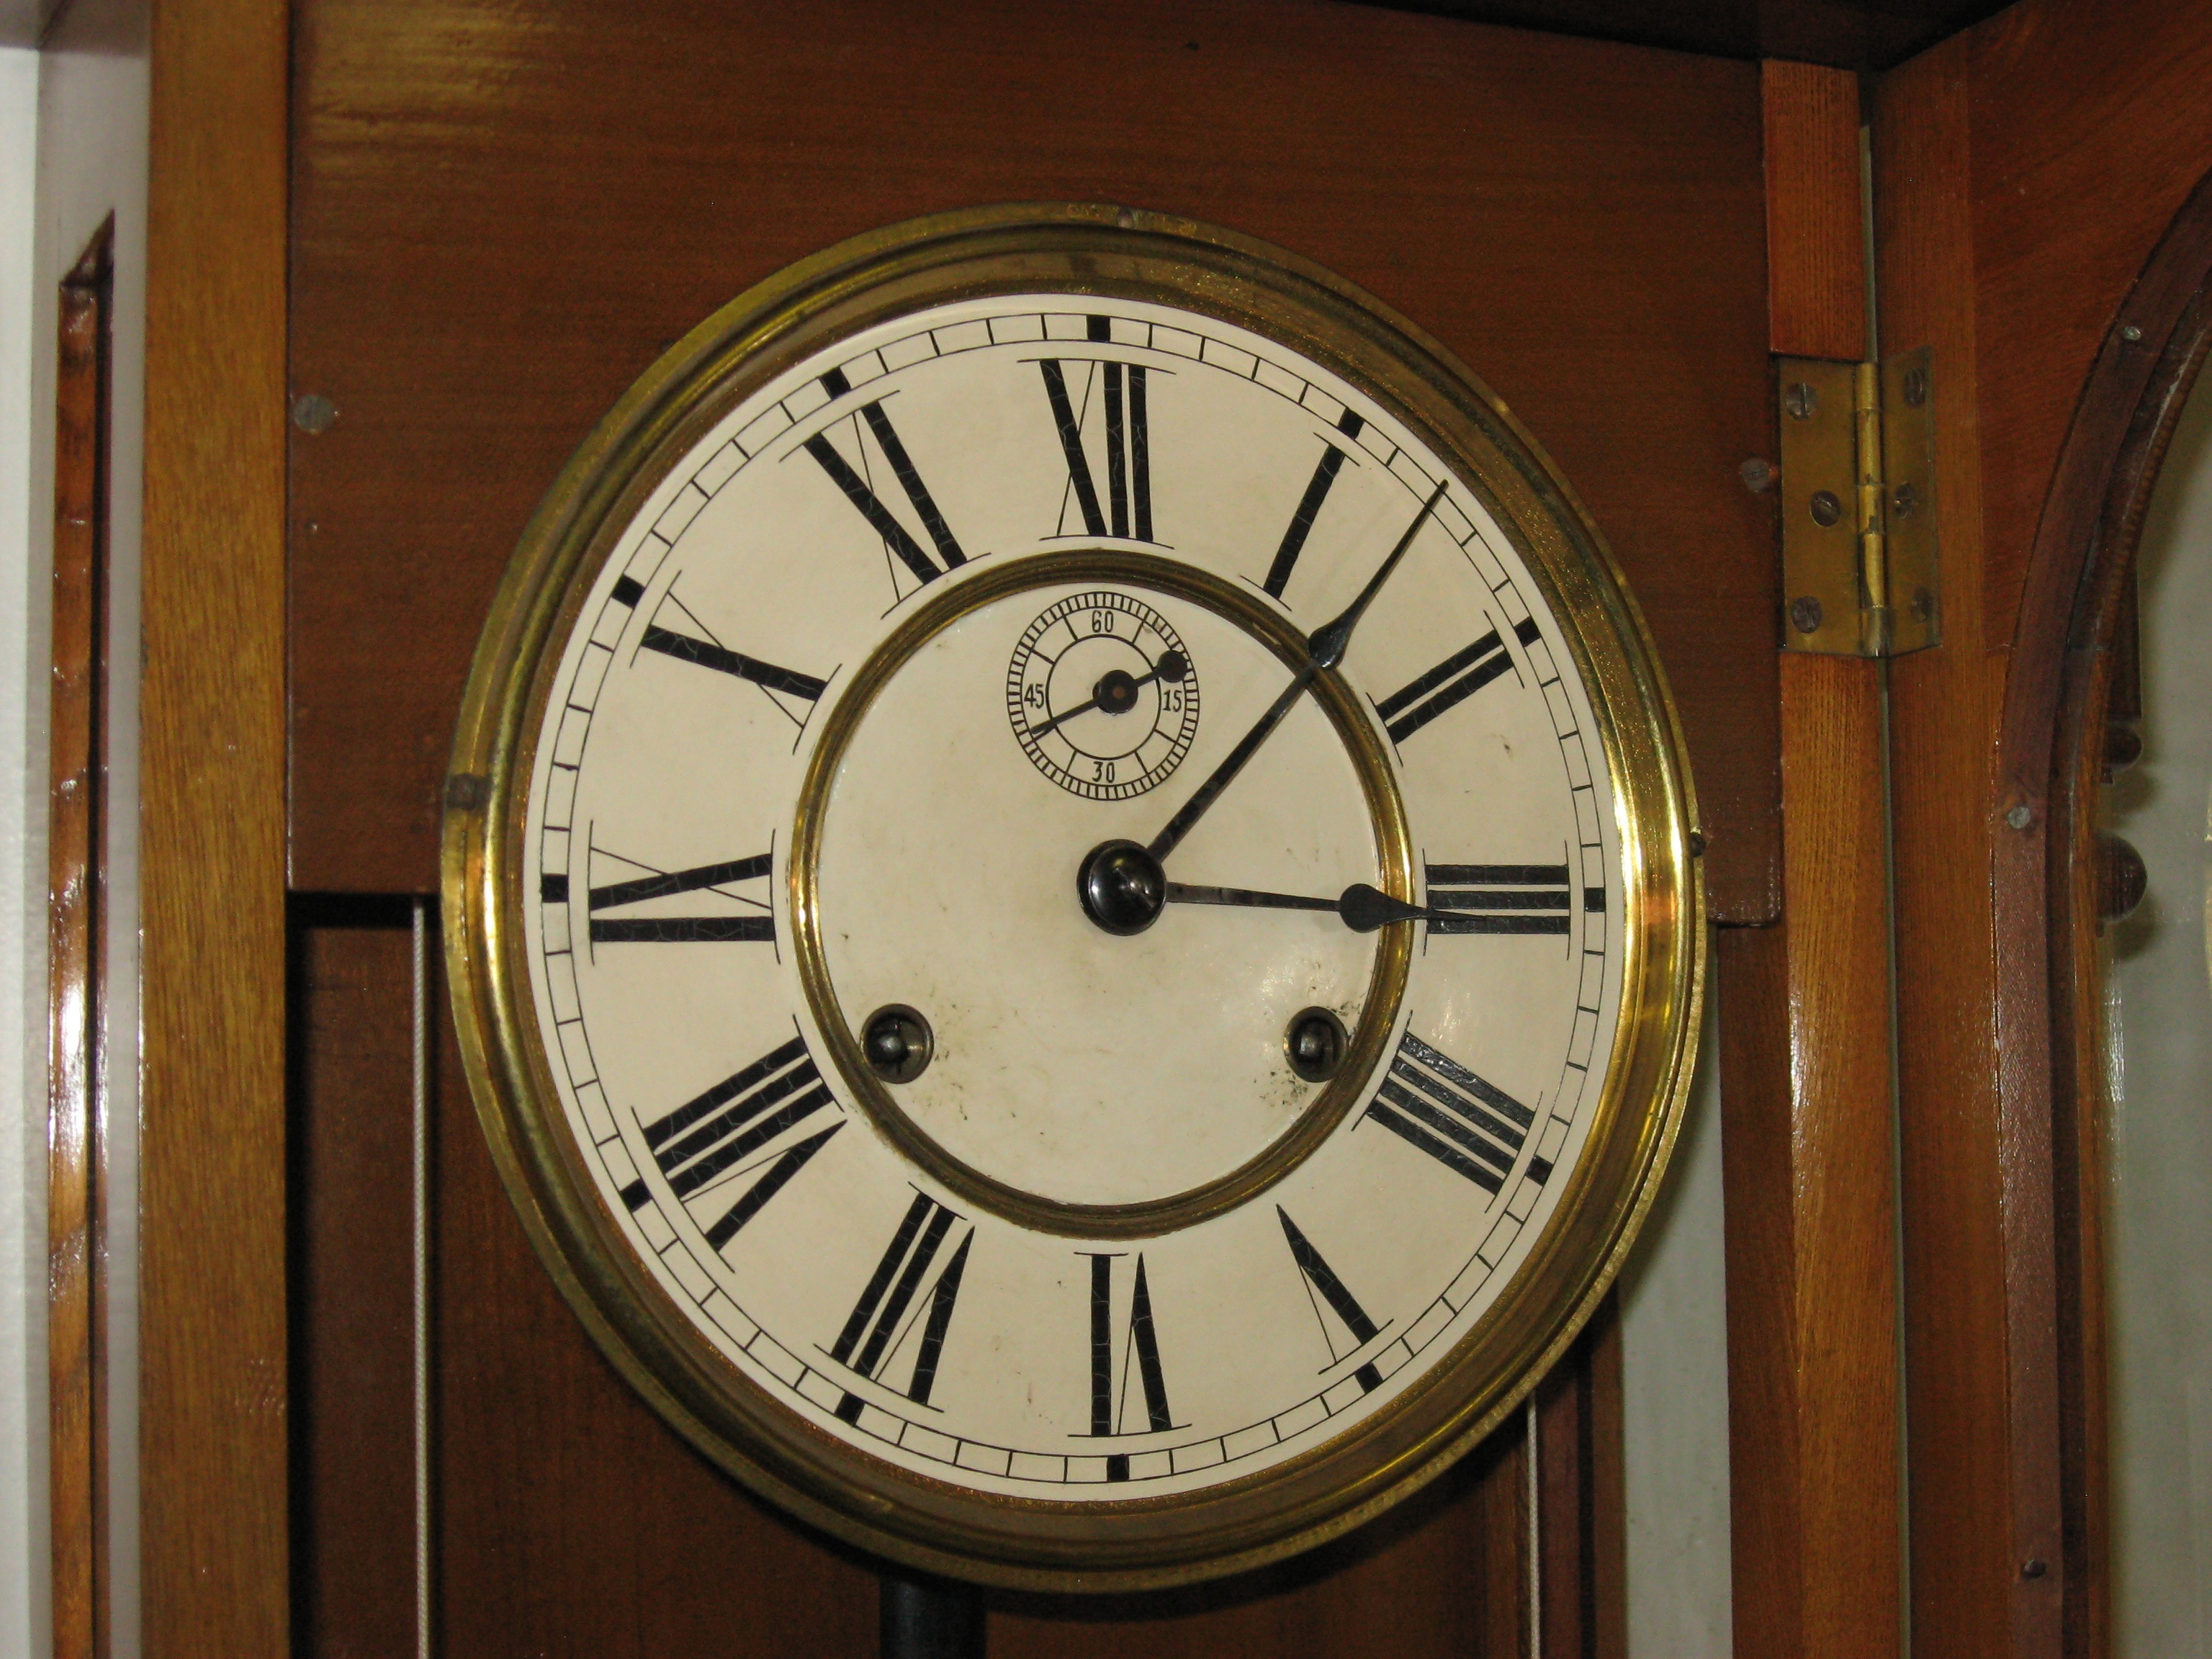 Ansonia capitol weight driven wall clock clockinfo see more photos two weights allow the clock amipublicfo Images